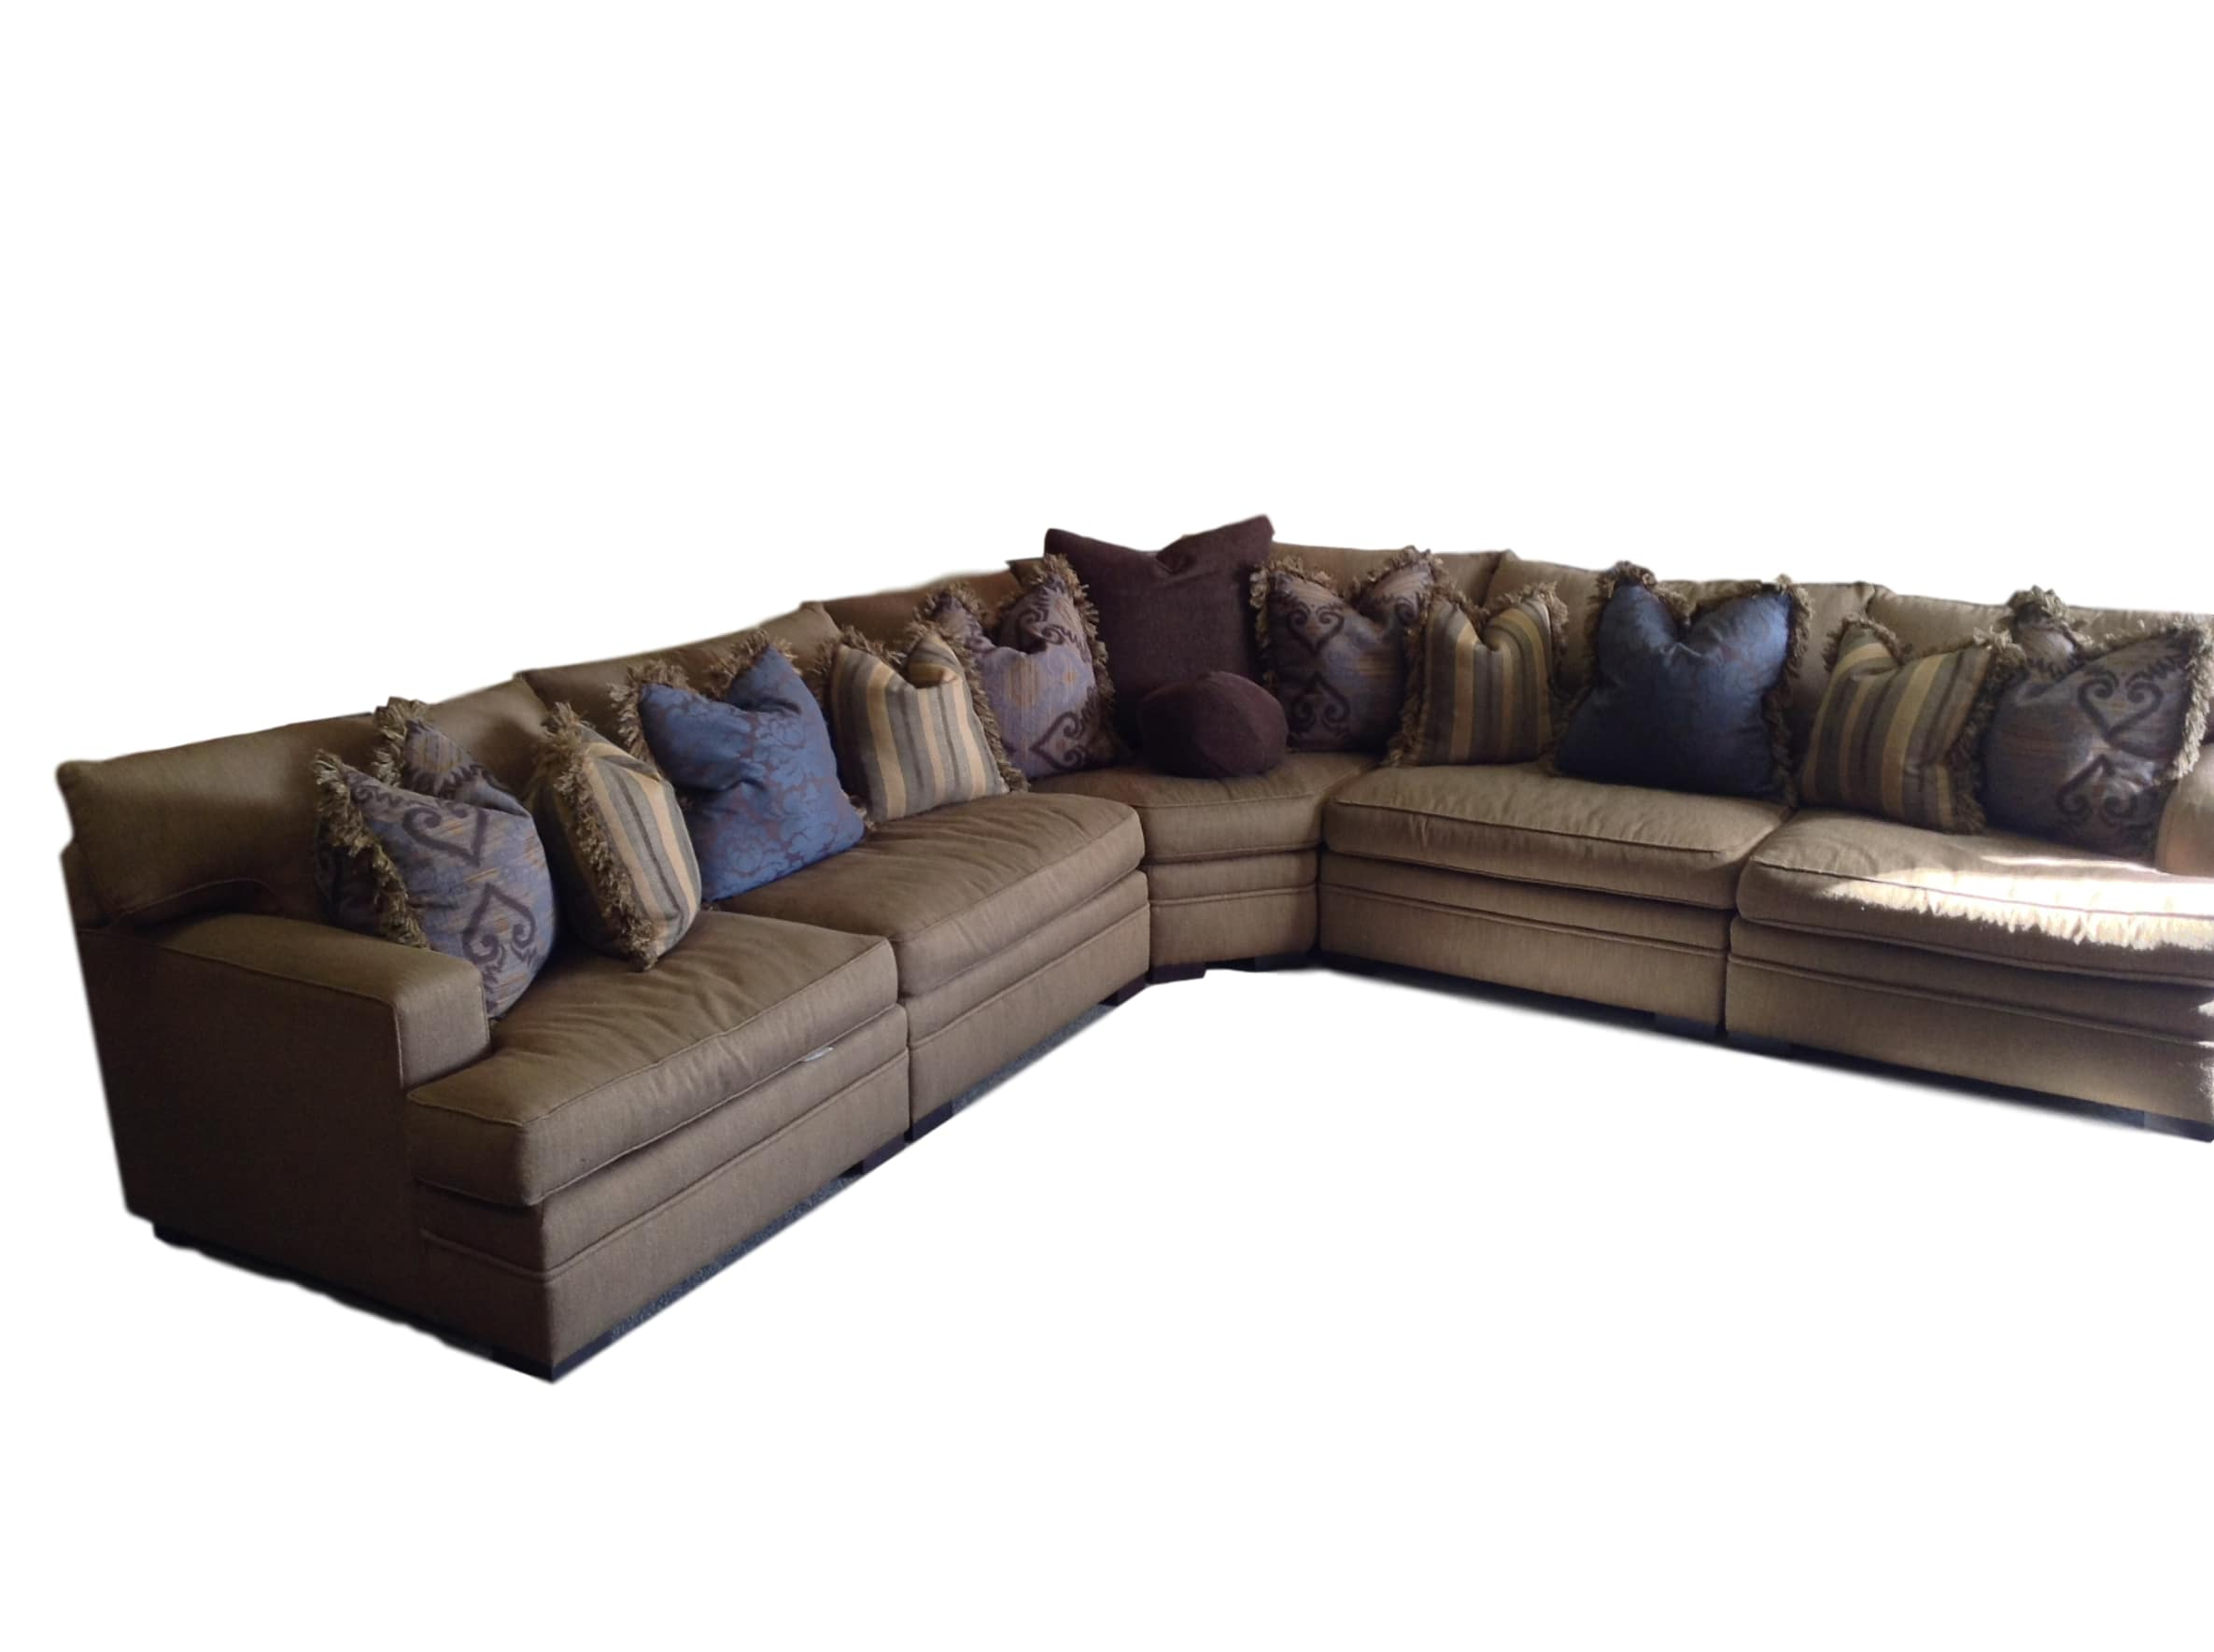 5 Piece Brown Fabric Sectional